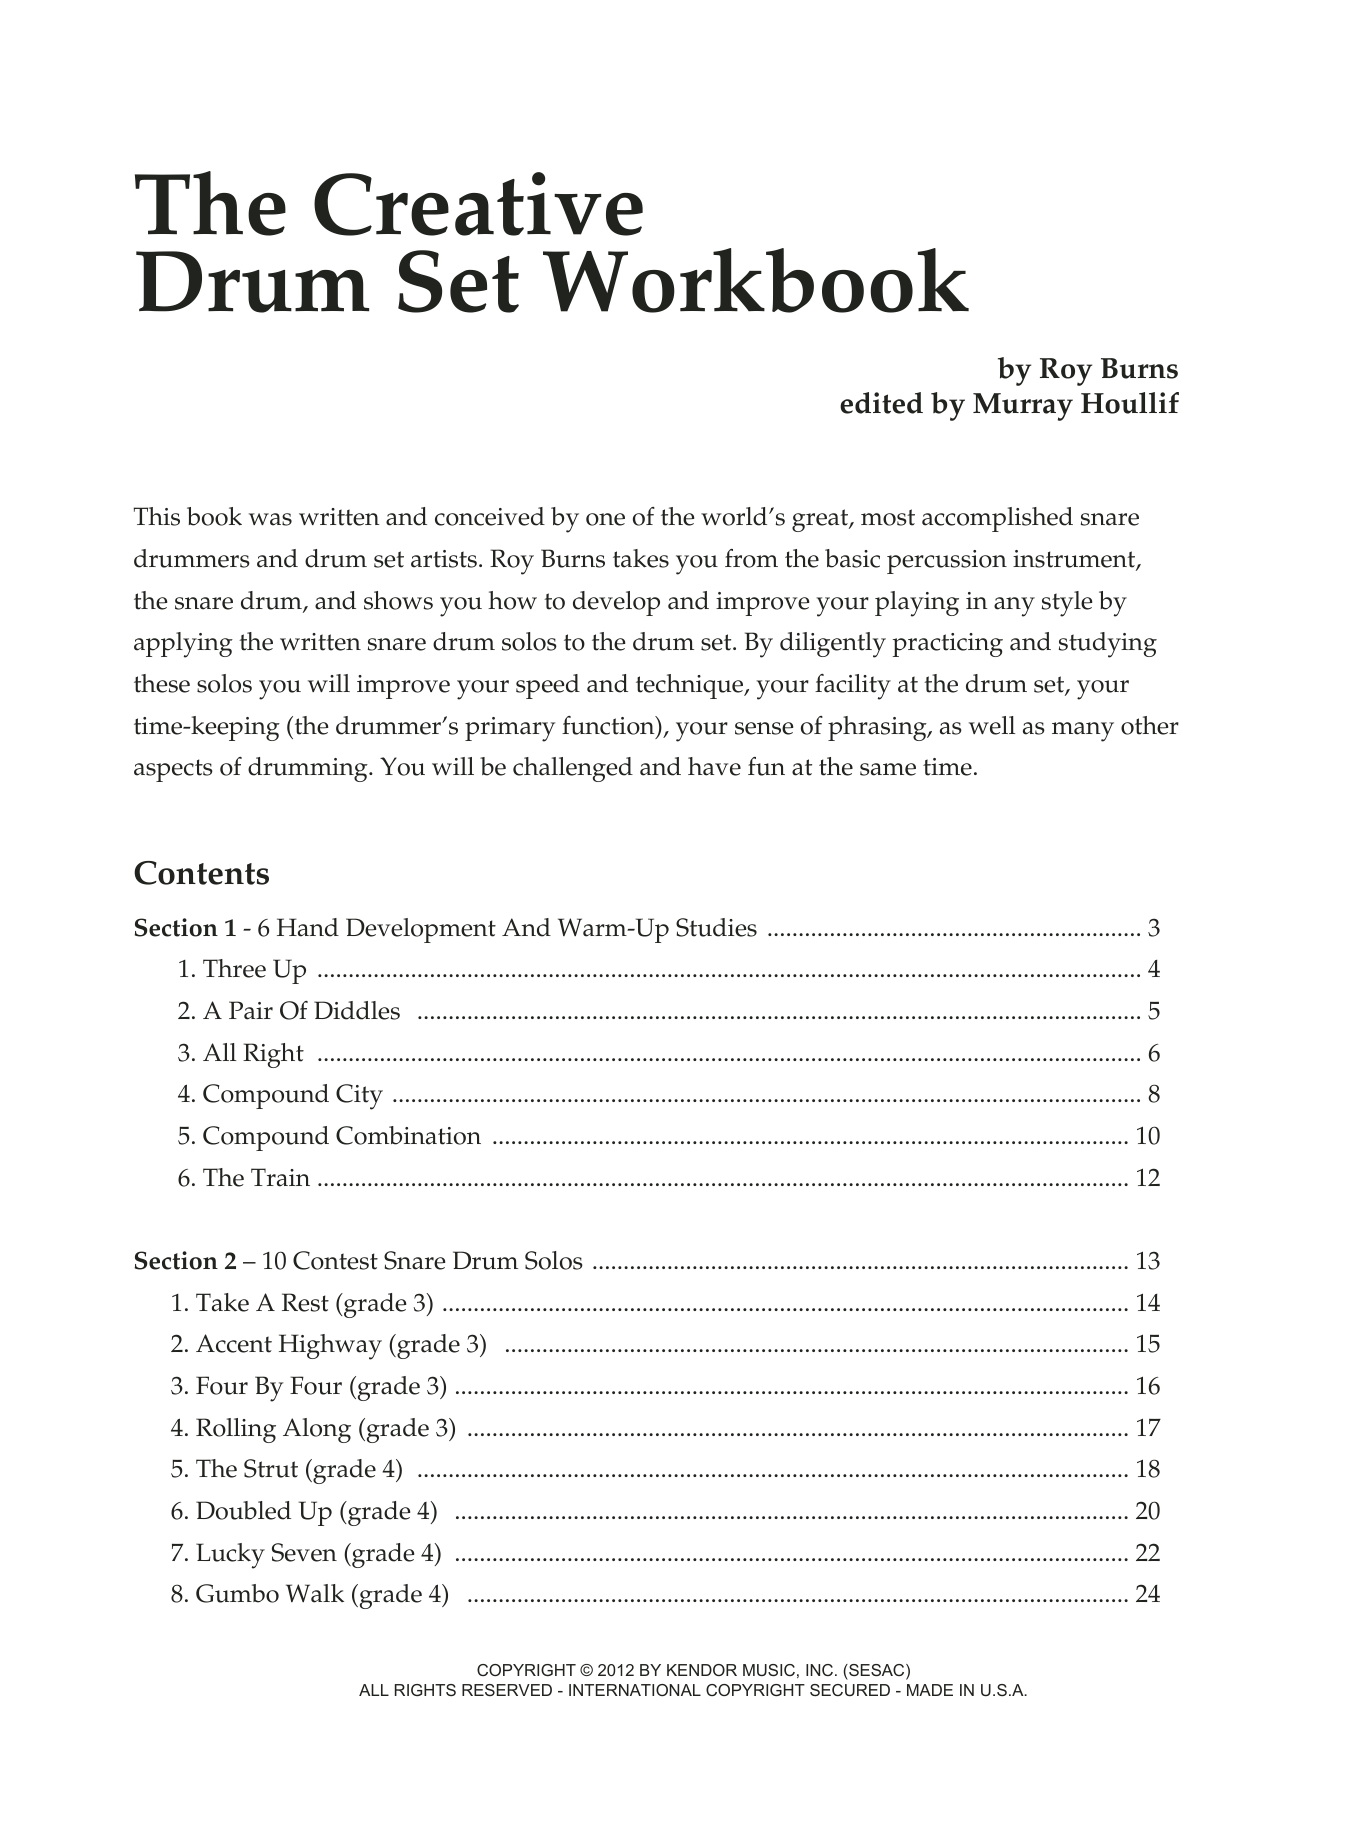 The Creative Drum Set Workbook Sheet Music